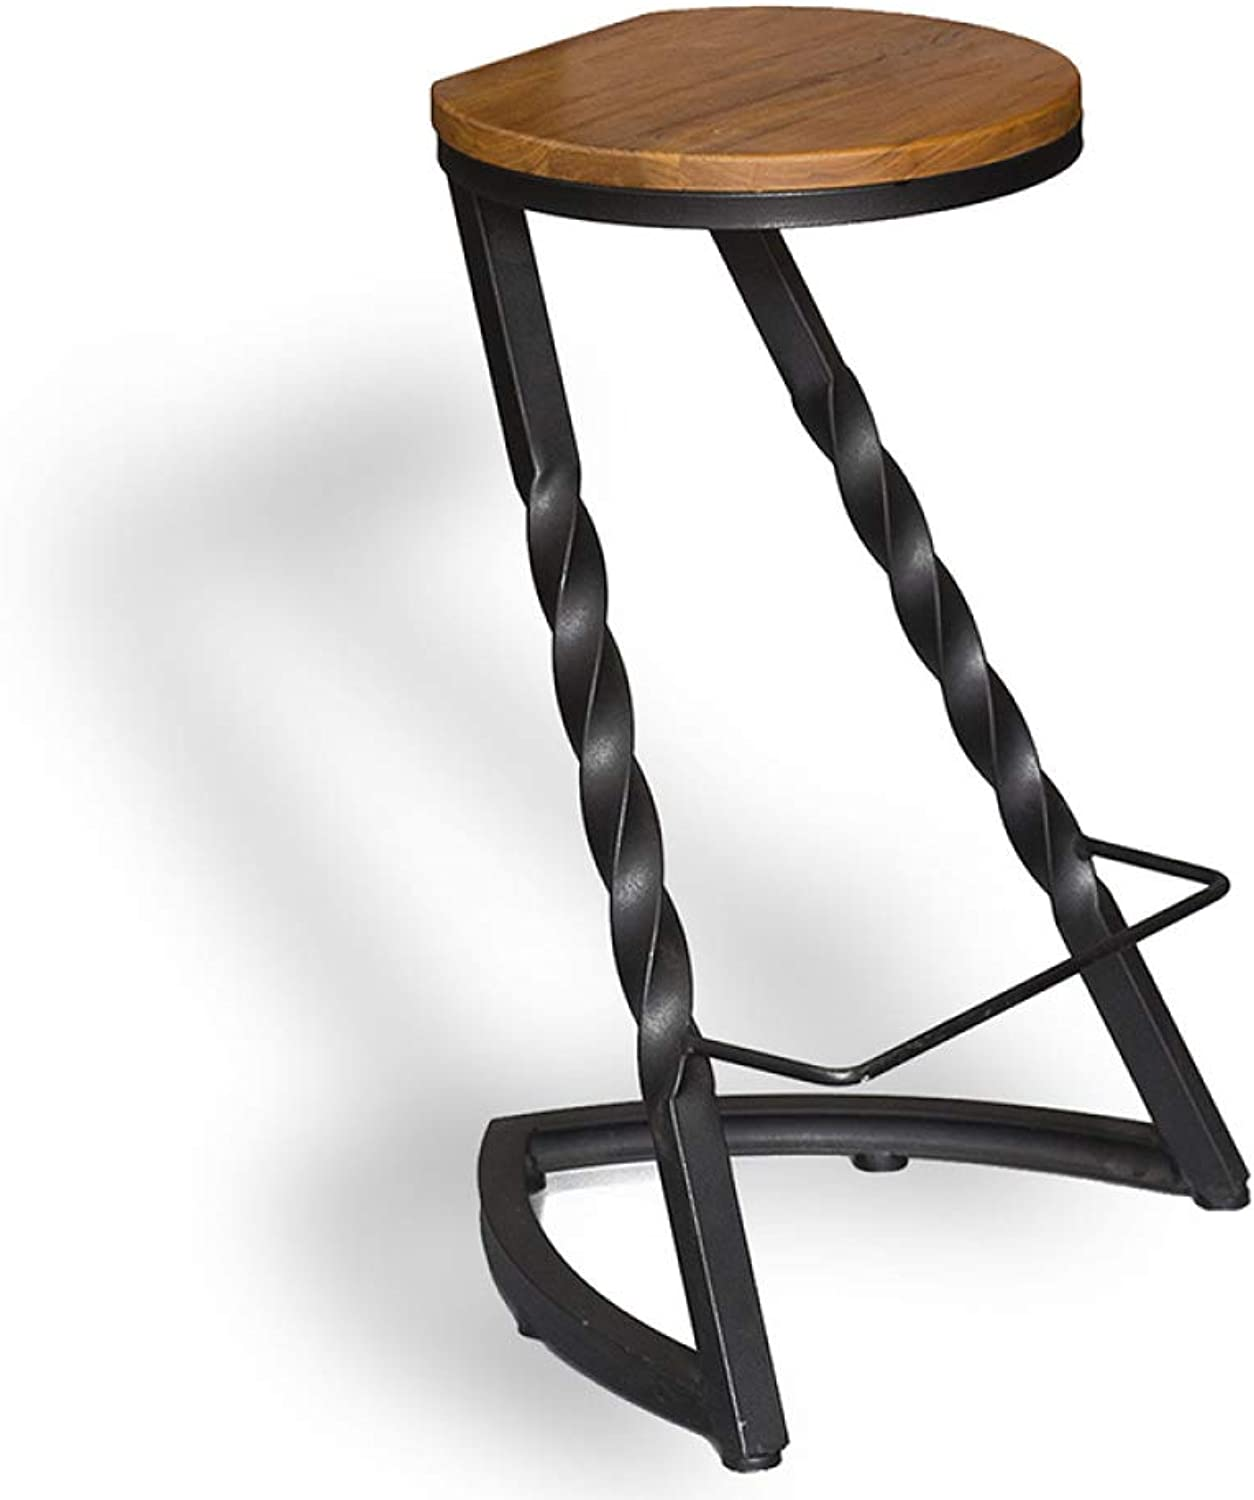 Vintage Counter Bar Stools Barstools Cafeteria Dining Chair High Stool with Black Metal Frame and Solid Wood Seat Industrial Style, Seat Height  74cm (A)